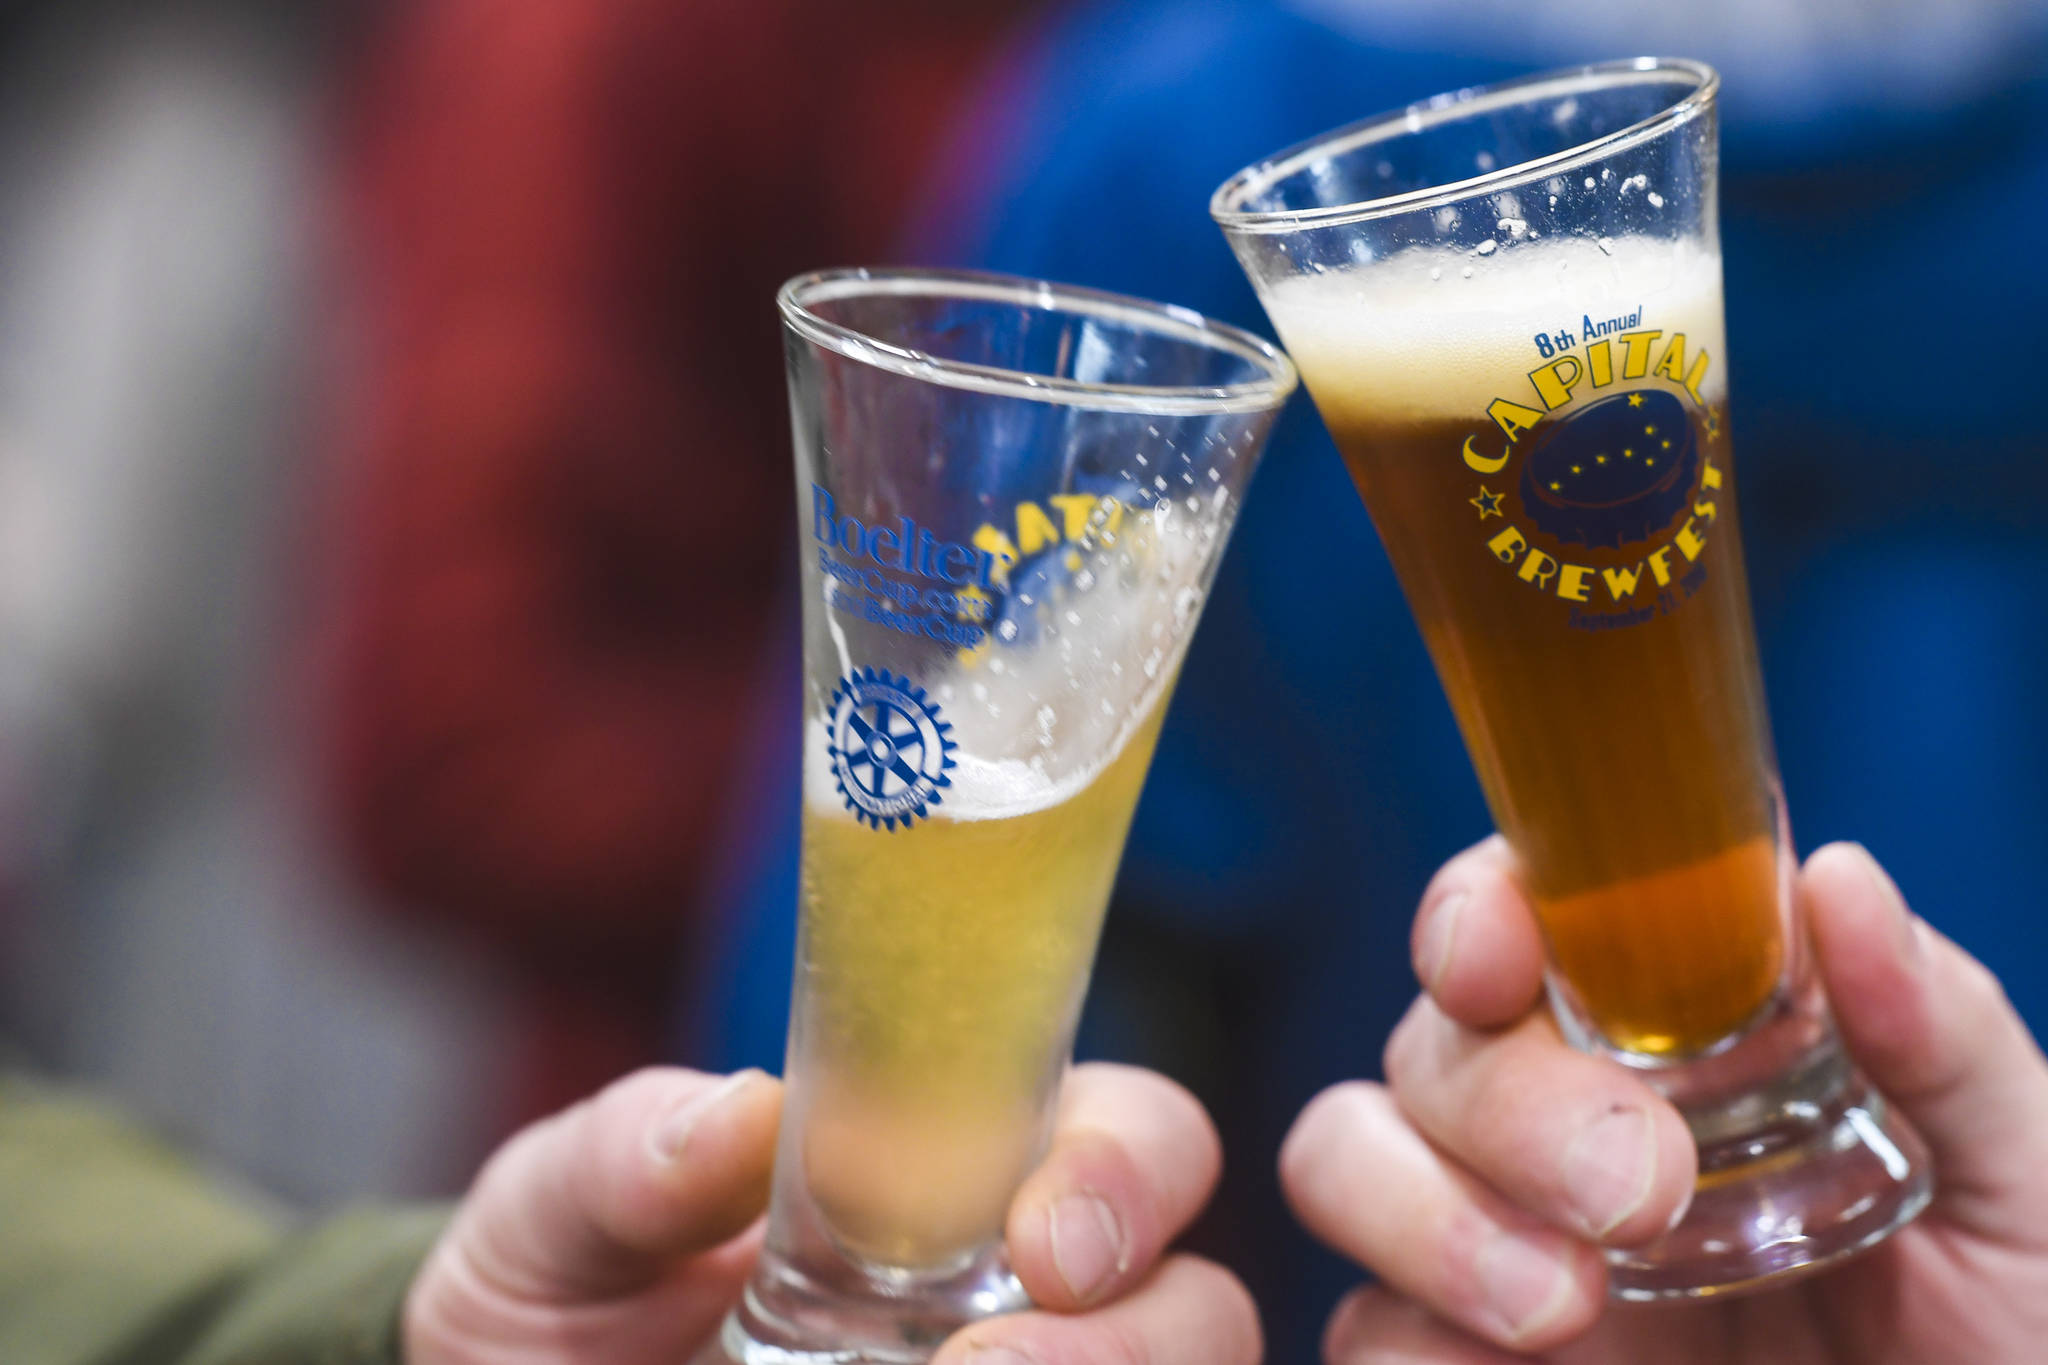 Juneau residents turn out for the Rotary Club of Juneau's Eighth Annual Capital Brewfest at the Juneau Arts and Culture Center on Saturday, Sept. 21, 2019. Twenty brewing and distribution companies were on hand for the fundraiser to benefit the University of Alaska and Rotary's service projects, scholarships, international youth exchanges and other project. The event was sold out with 900 tickets sold. (Michael Penn | Juneau Empire)